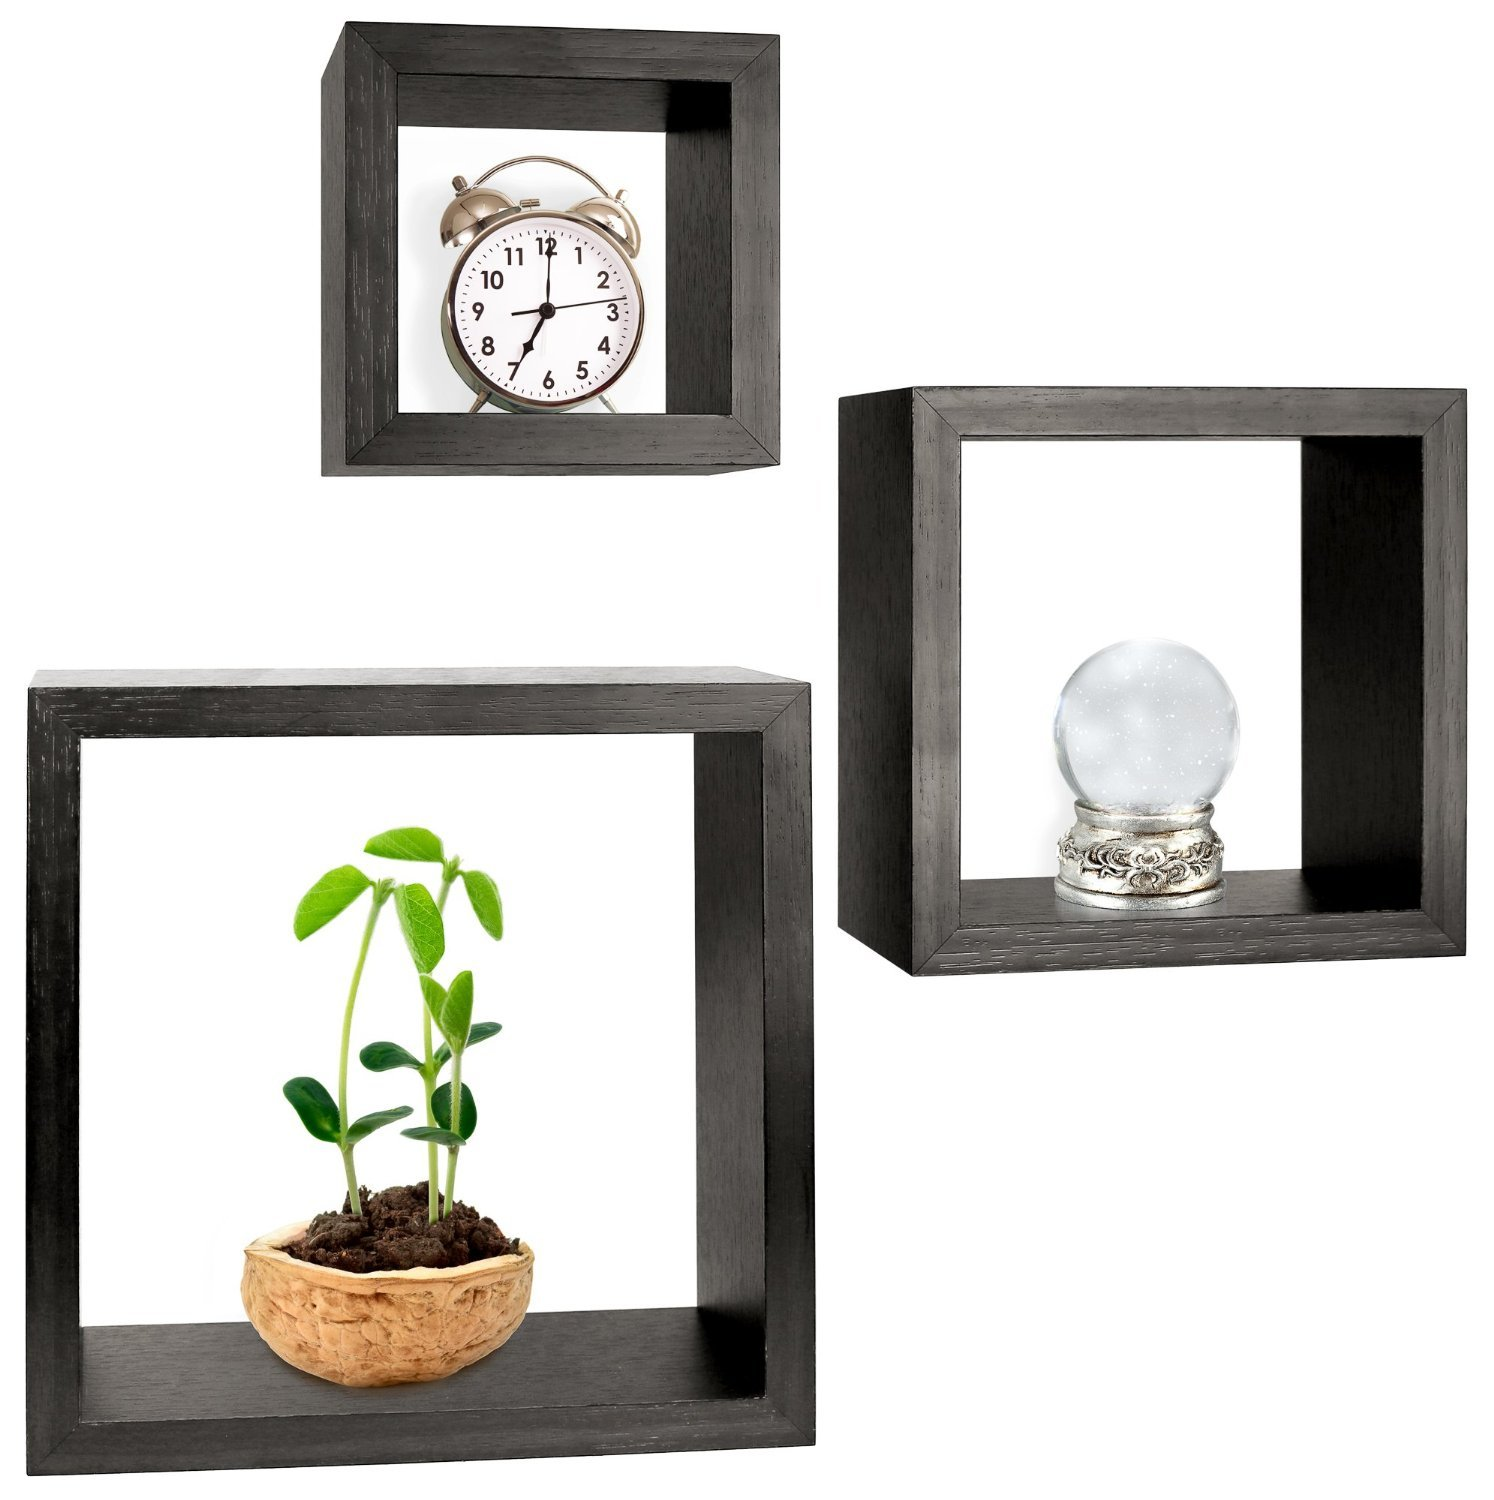 Greenco Set of 3 Floating Cube Shelves, Espresso Finish - Set of 3 size shelves Made of durable MDF laminate Beautiful espresso finish that suits almost any decor Easy to mount with all necessary hardware Included - wall-shelves, living-room-furniture, living-room - 717ci0%2BzPIL -